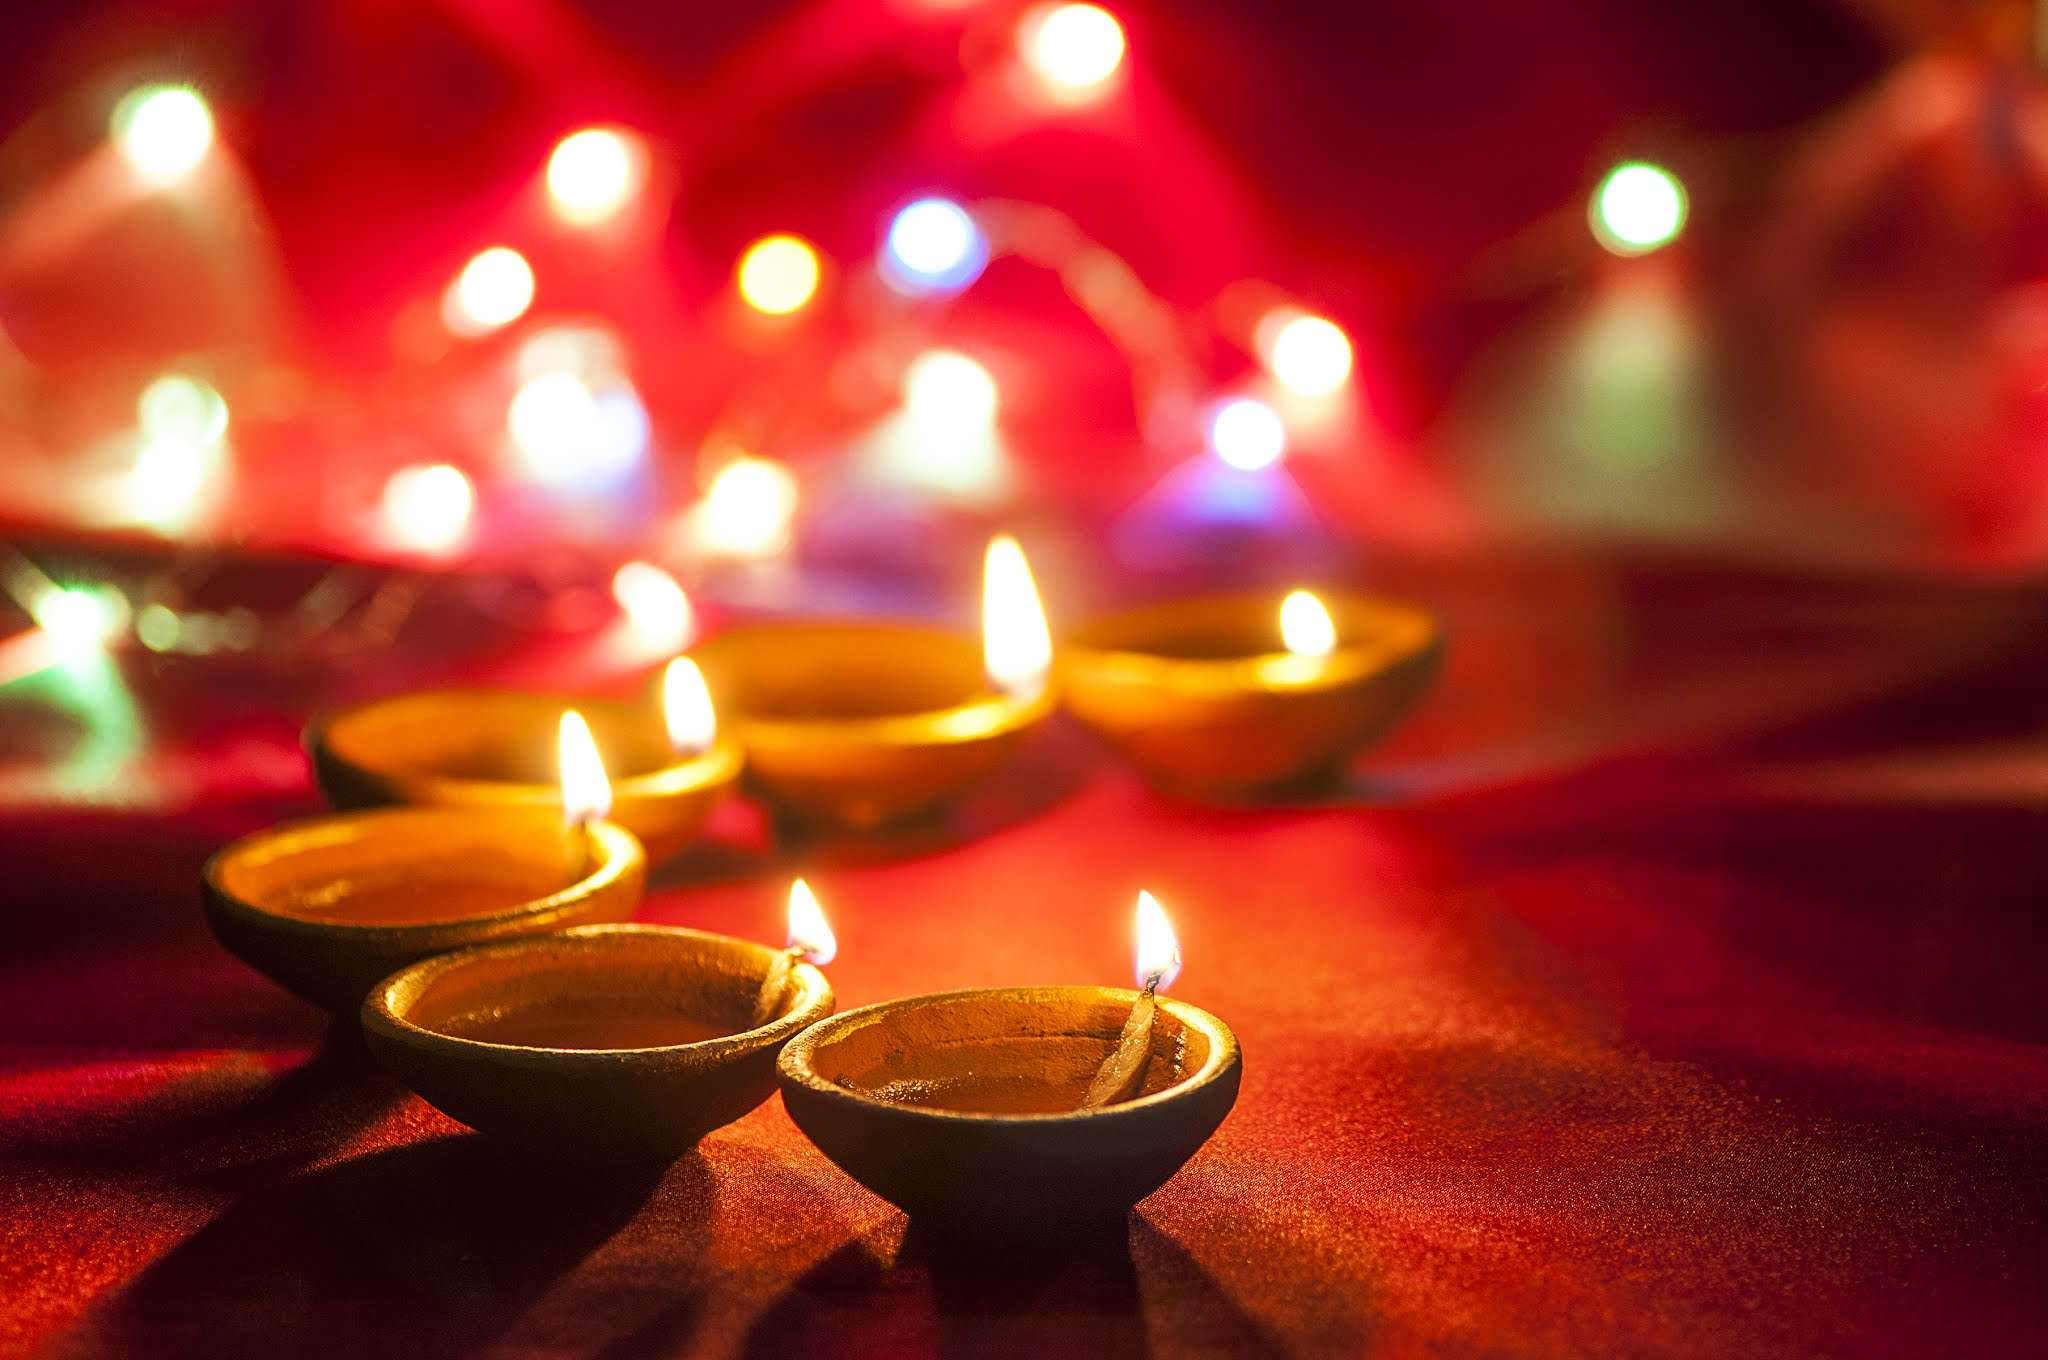 Happy Diwali 2018: WhatsApp messages, wishes, images